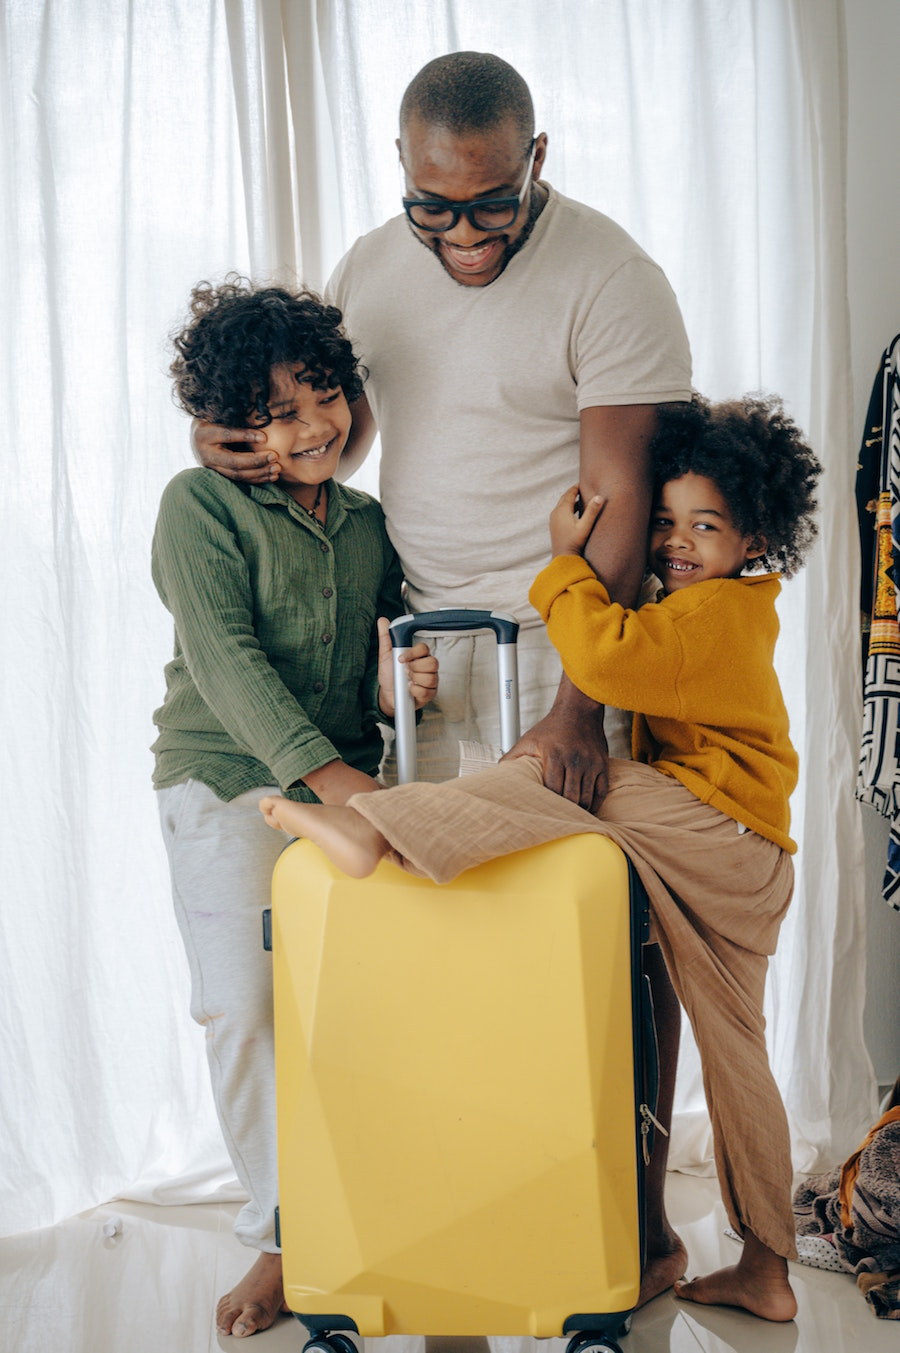 Dad and kids with suitcase